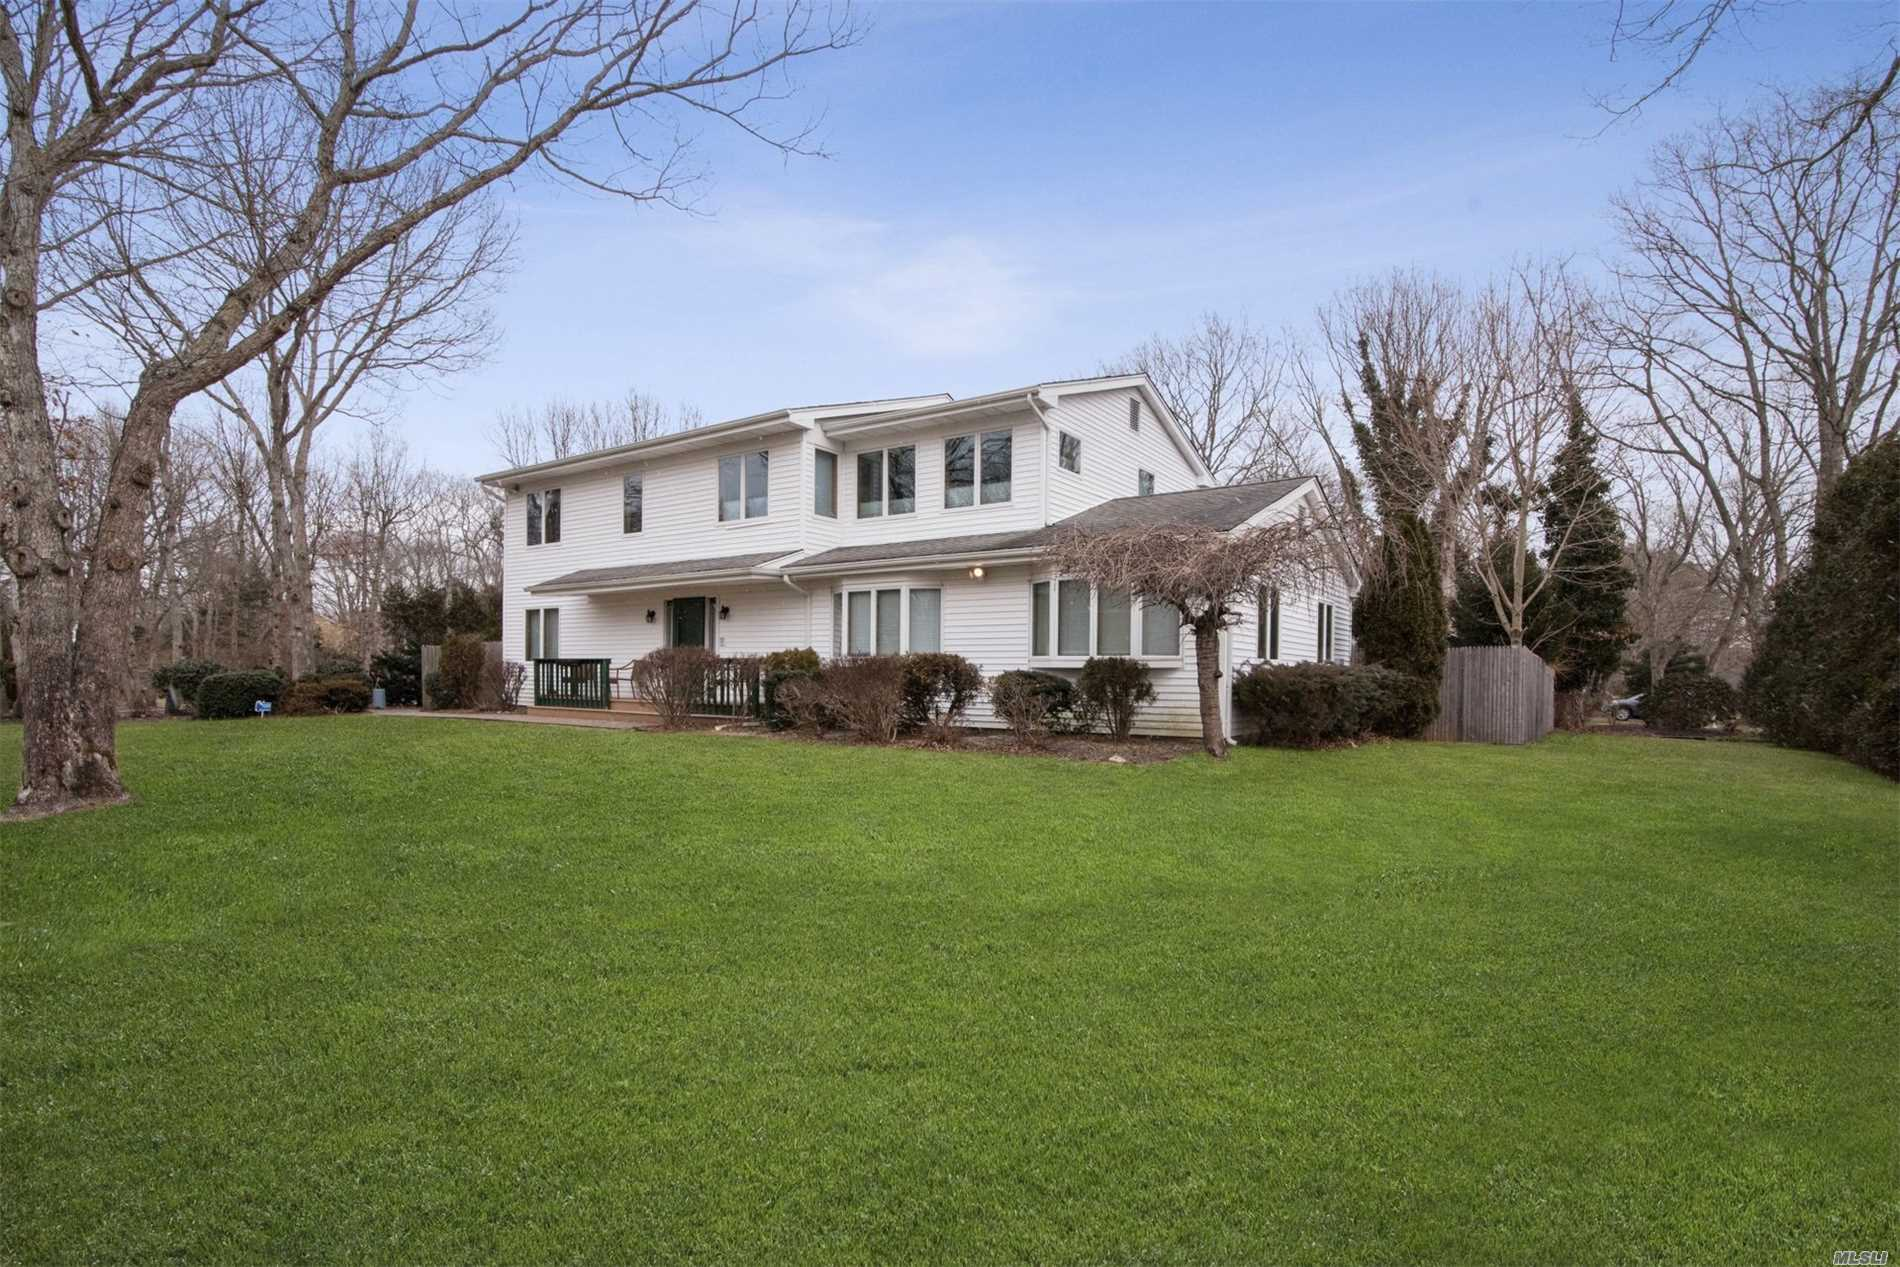 237 Helme Ave - Miller Place, New York